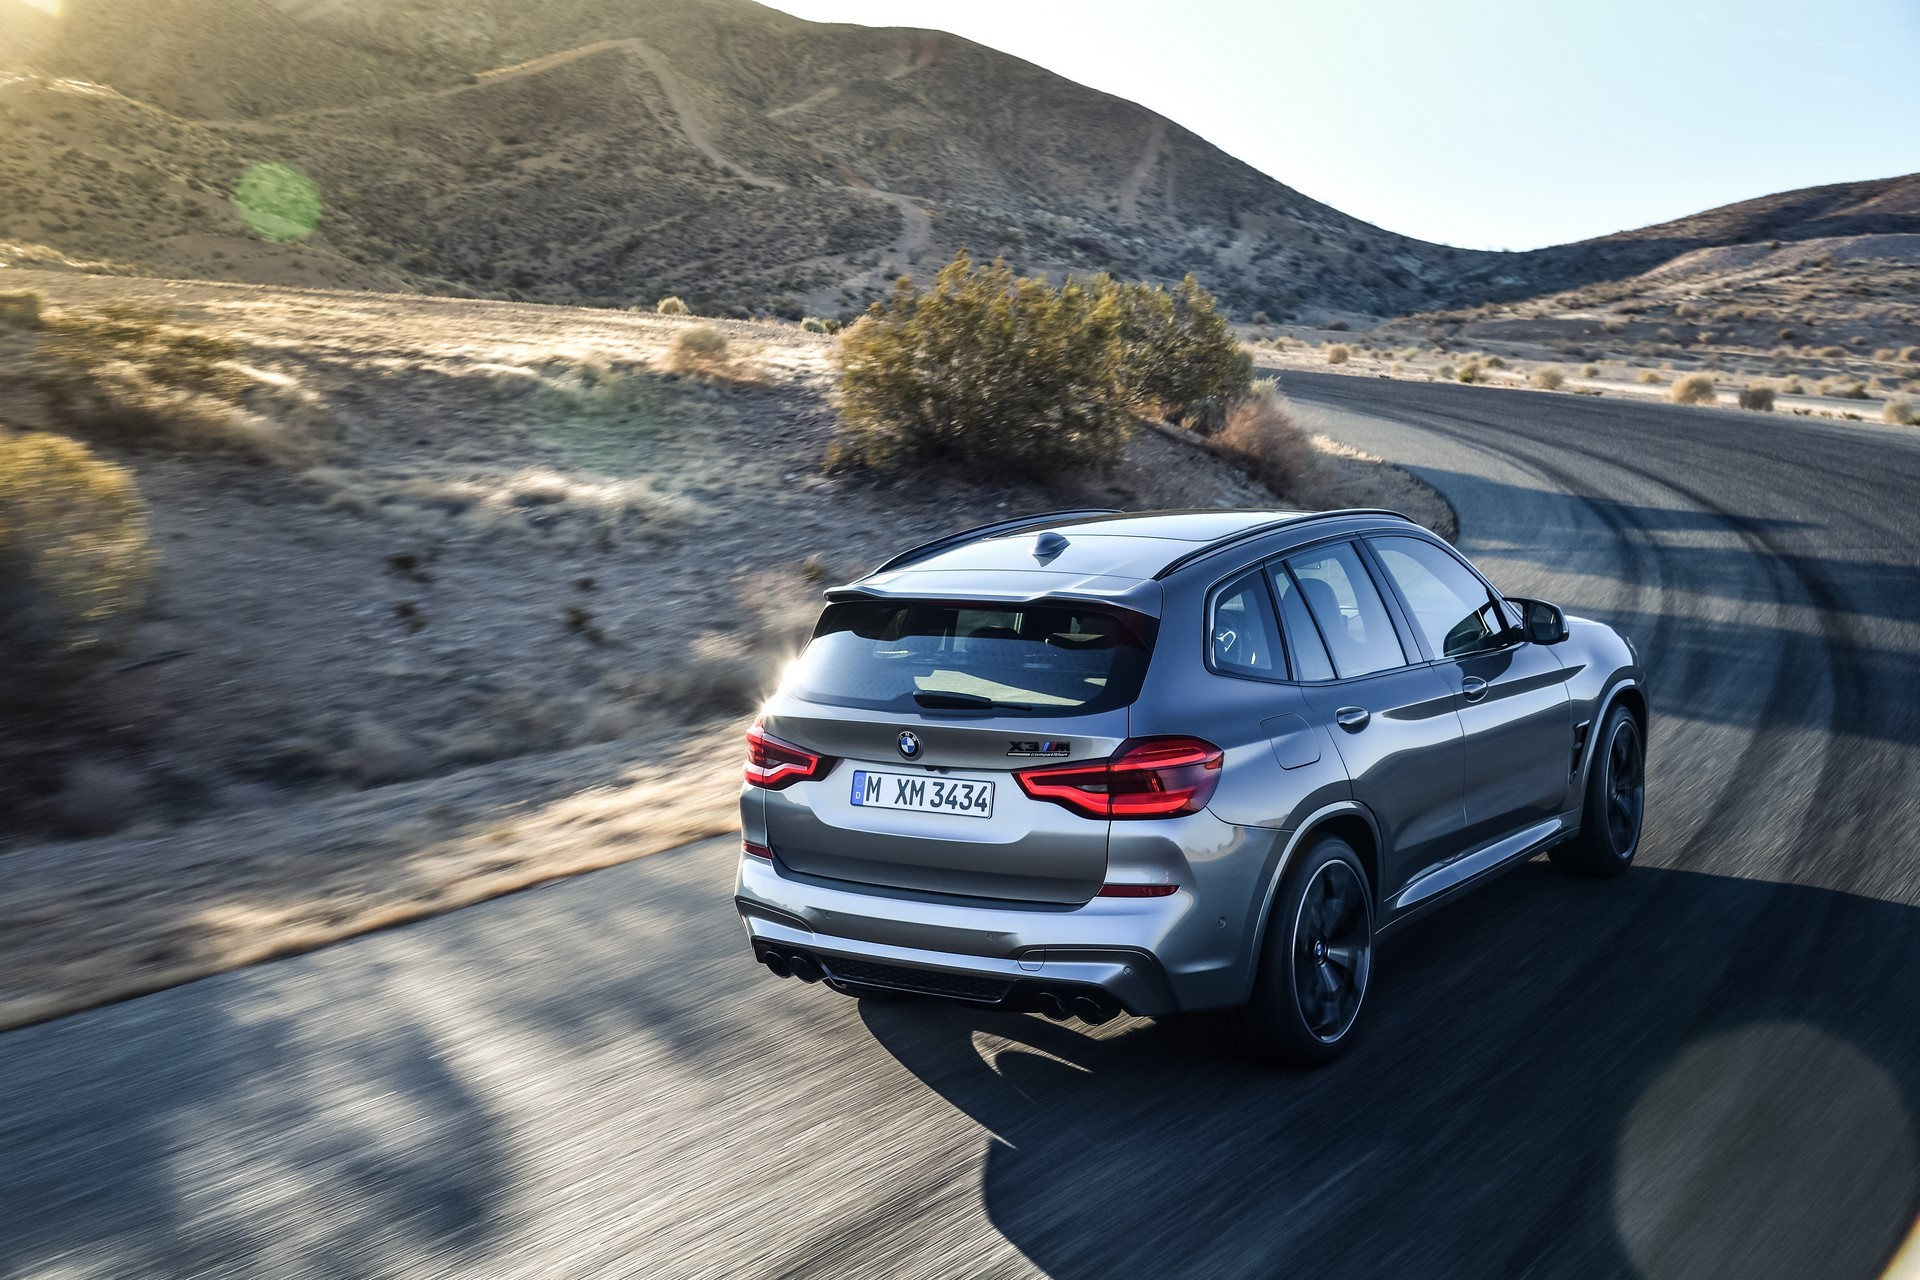 BMW X3 M and X4 M 2019 (36)